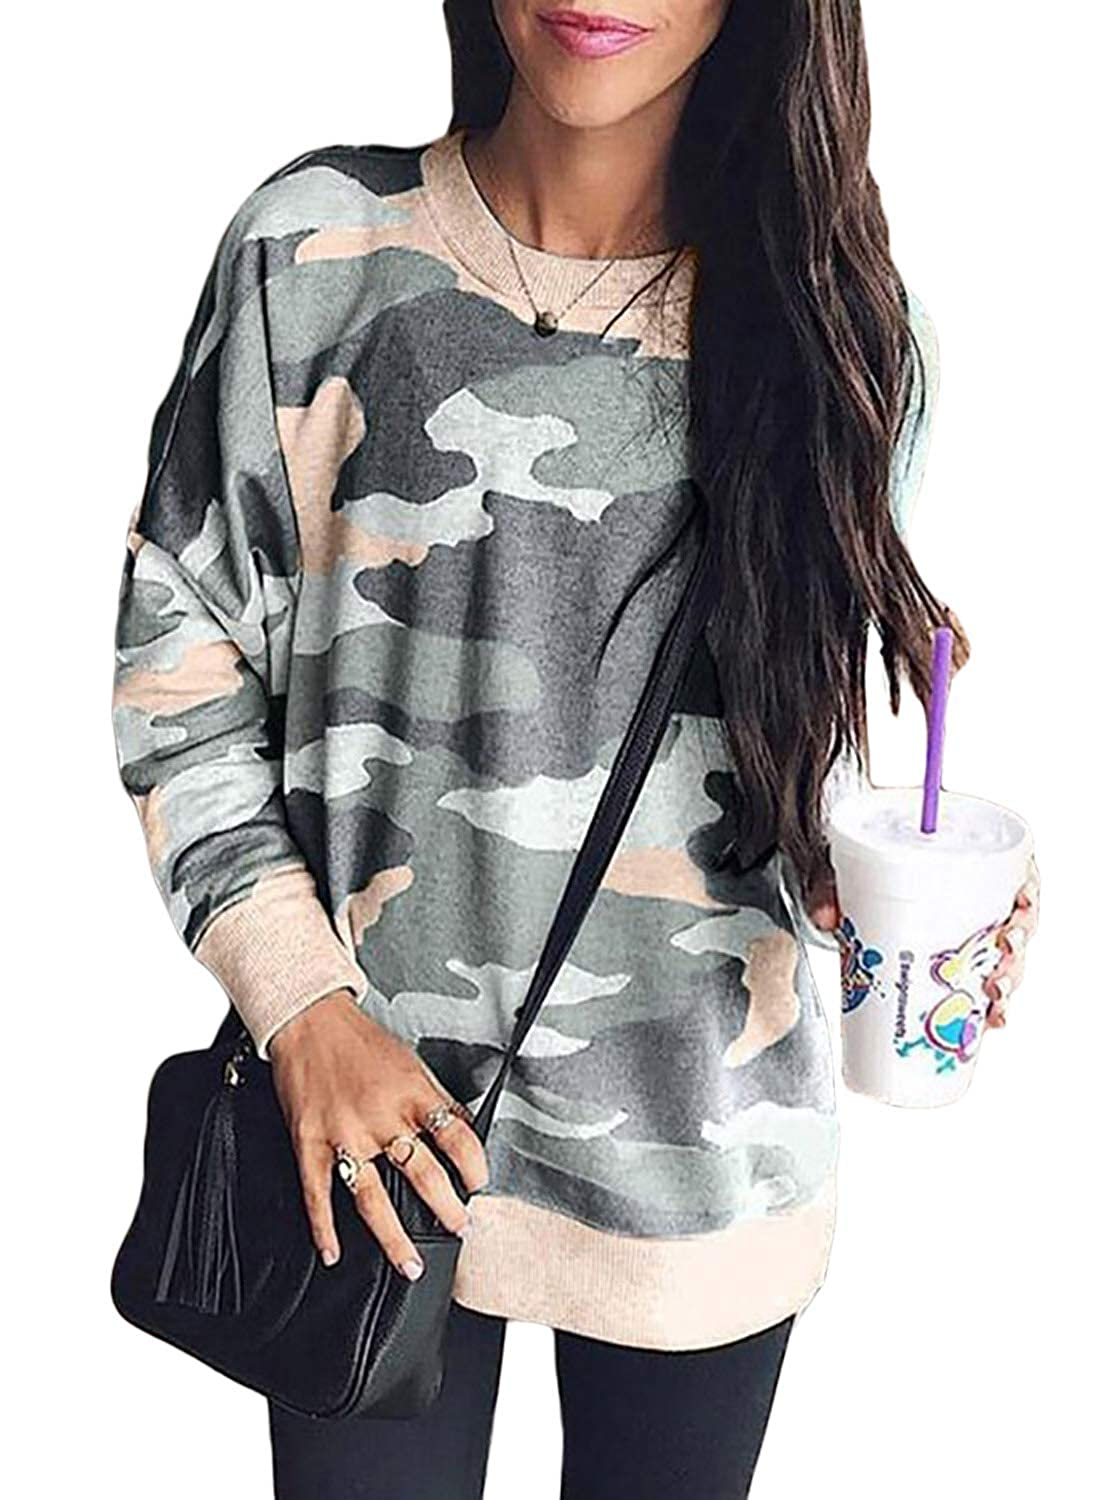 LOSRLY Women Crew Neck Camo Printed Long Sleeve Sweatshirts Casual Blouses Tops YL251694